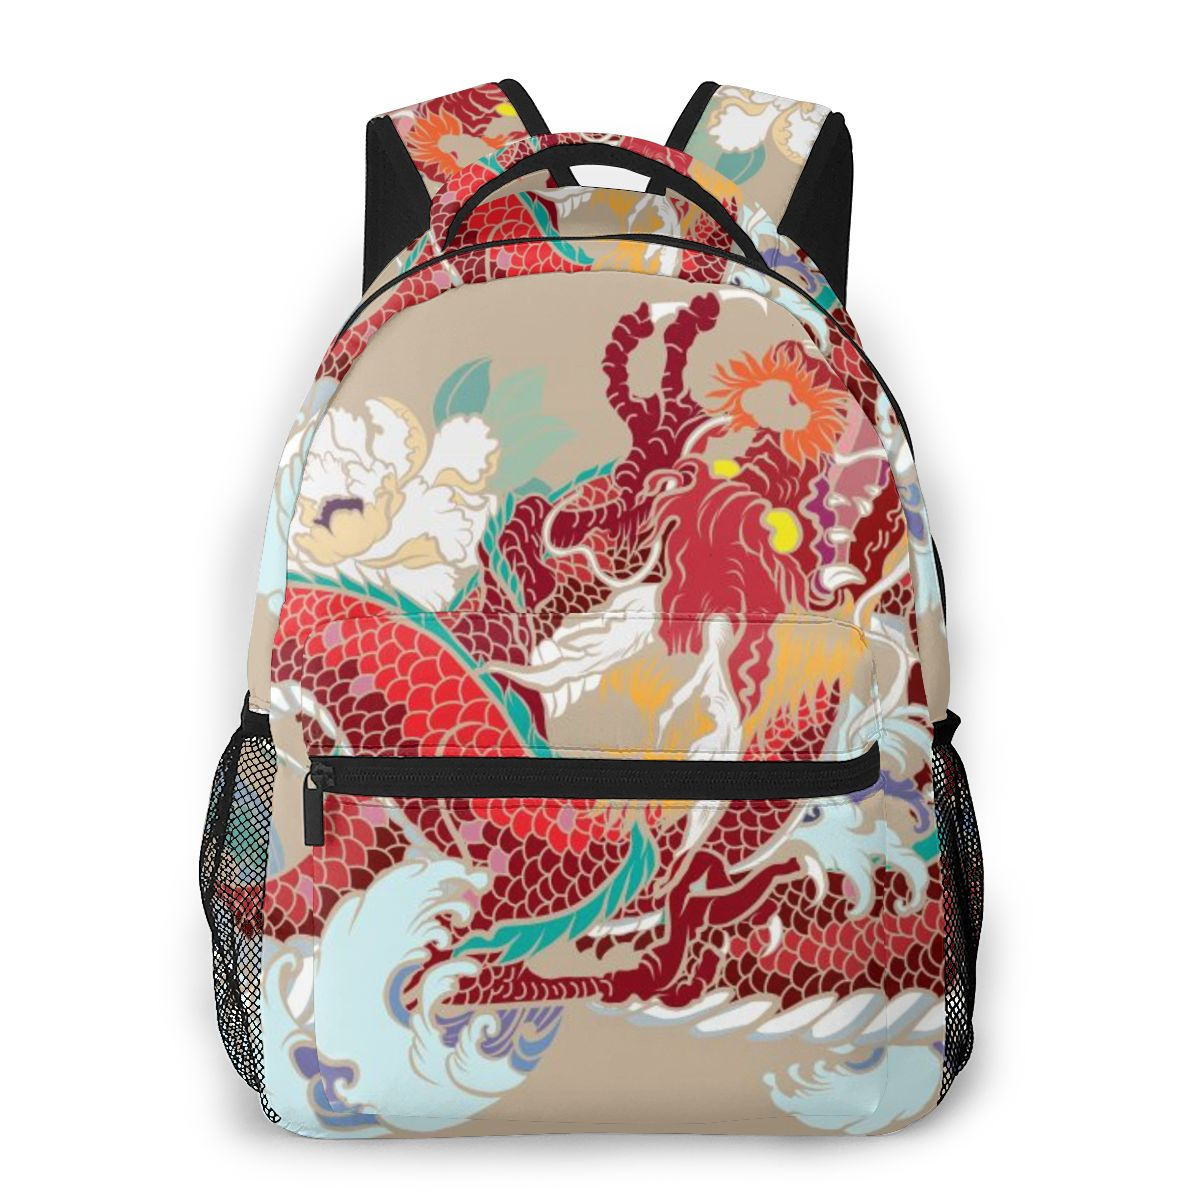 OLN Teenagers Boy Backpack Colorful Dragon And Plum Flower Tattoo Casual Laptop Backpack Student School Bag Backpack